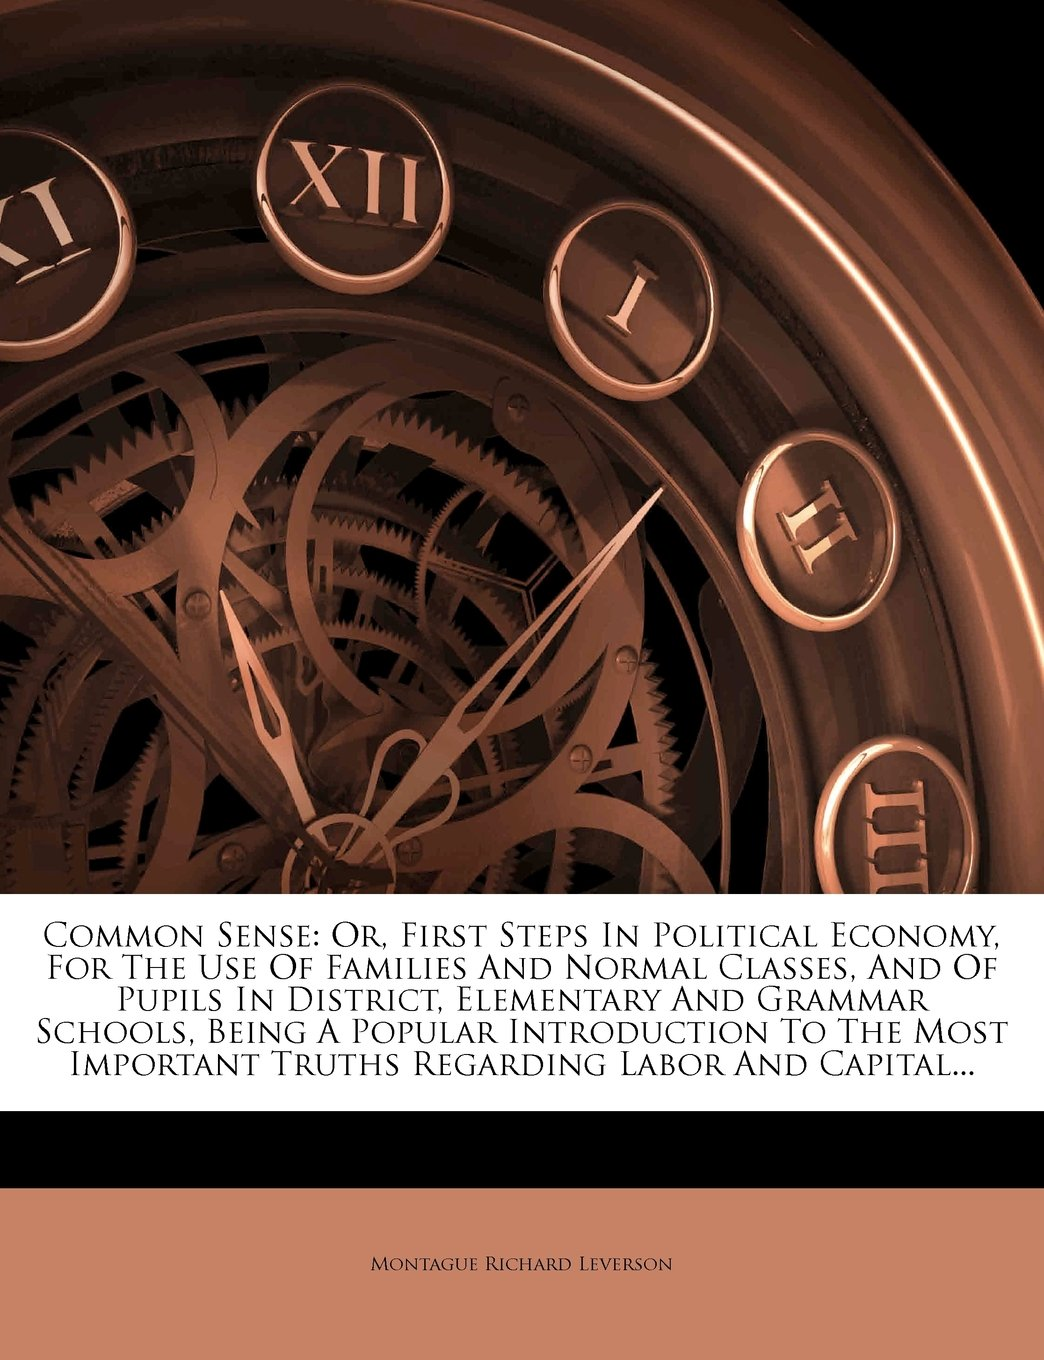 Common Sense: Or, First Steps In Political Economy, For The Use Of Families And Normal Classes, And Of Pupils In District, Elementary And Grammar ... Truths Regarding Labor And Capital... ebook